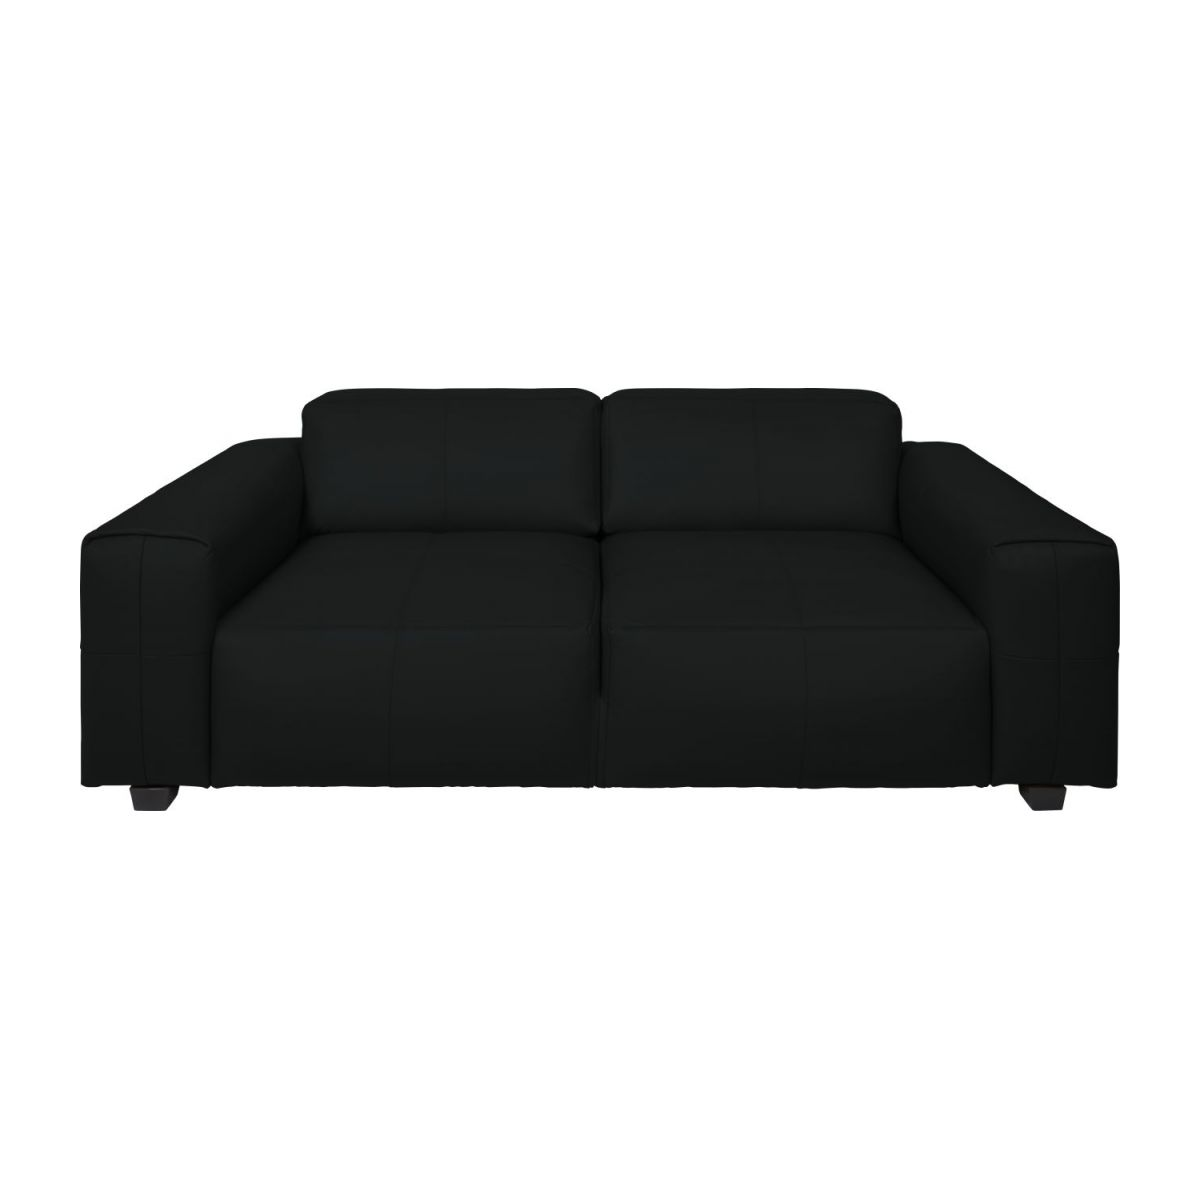 4 seater sofa in Savoy semi-aniline leather, platin black n°3